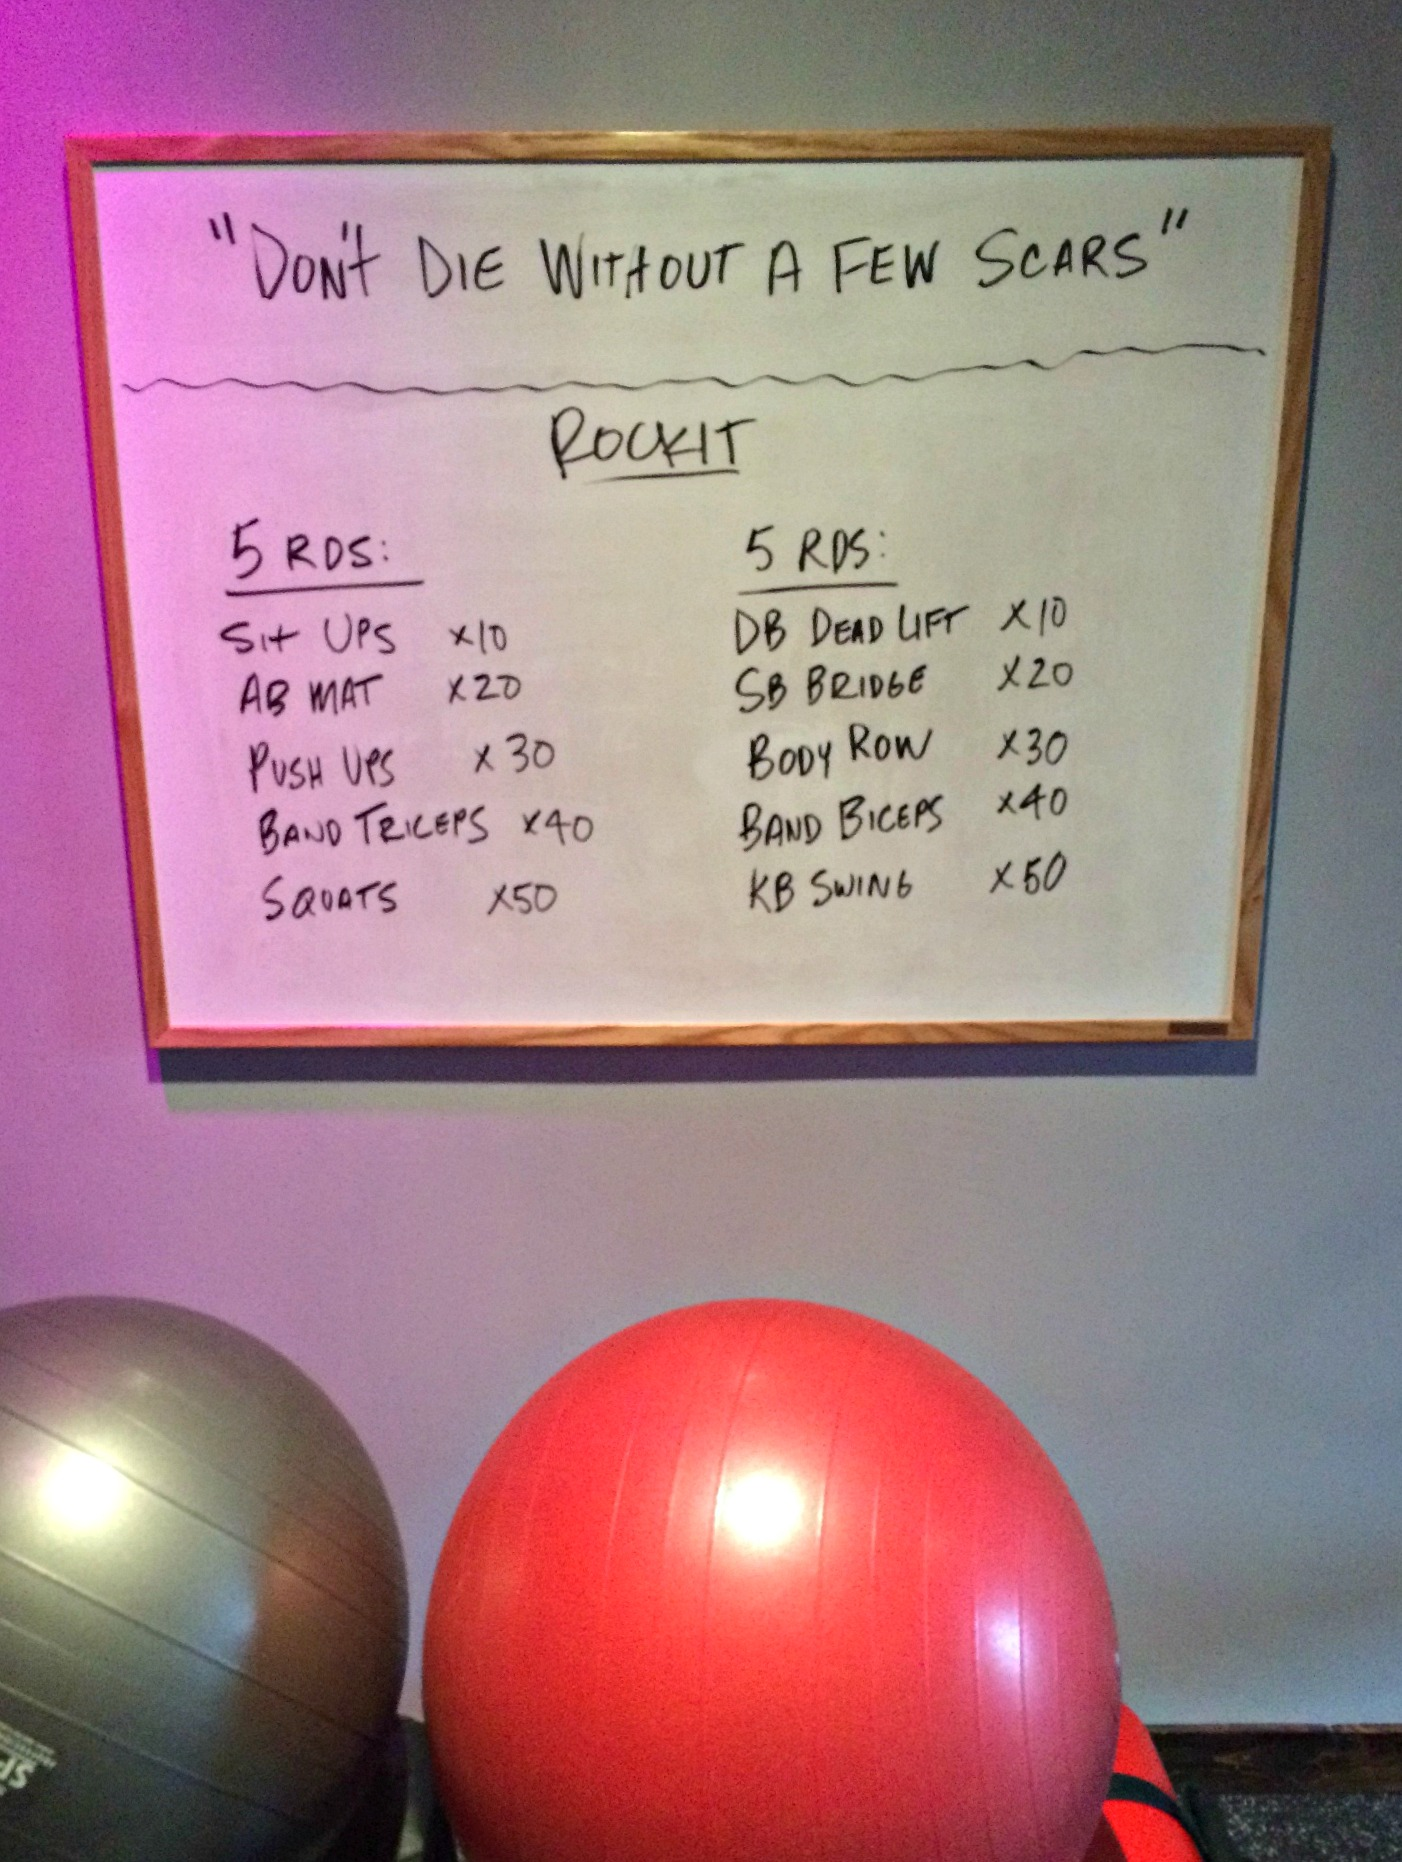 Rockit workout of the day